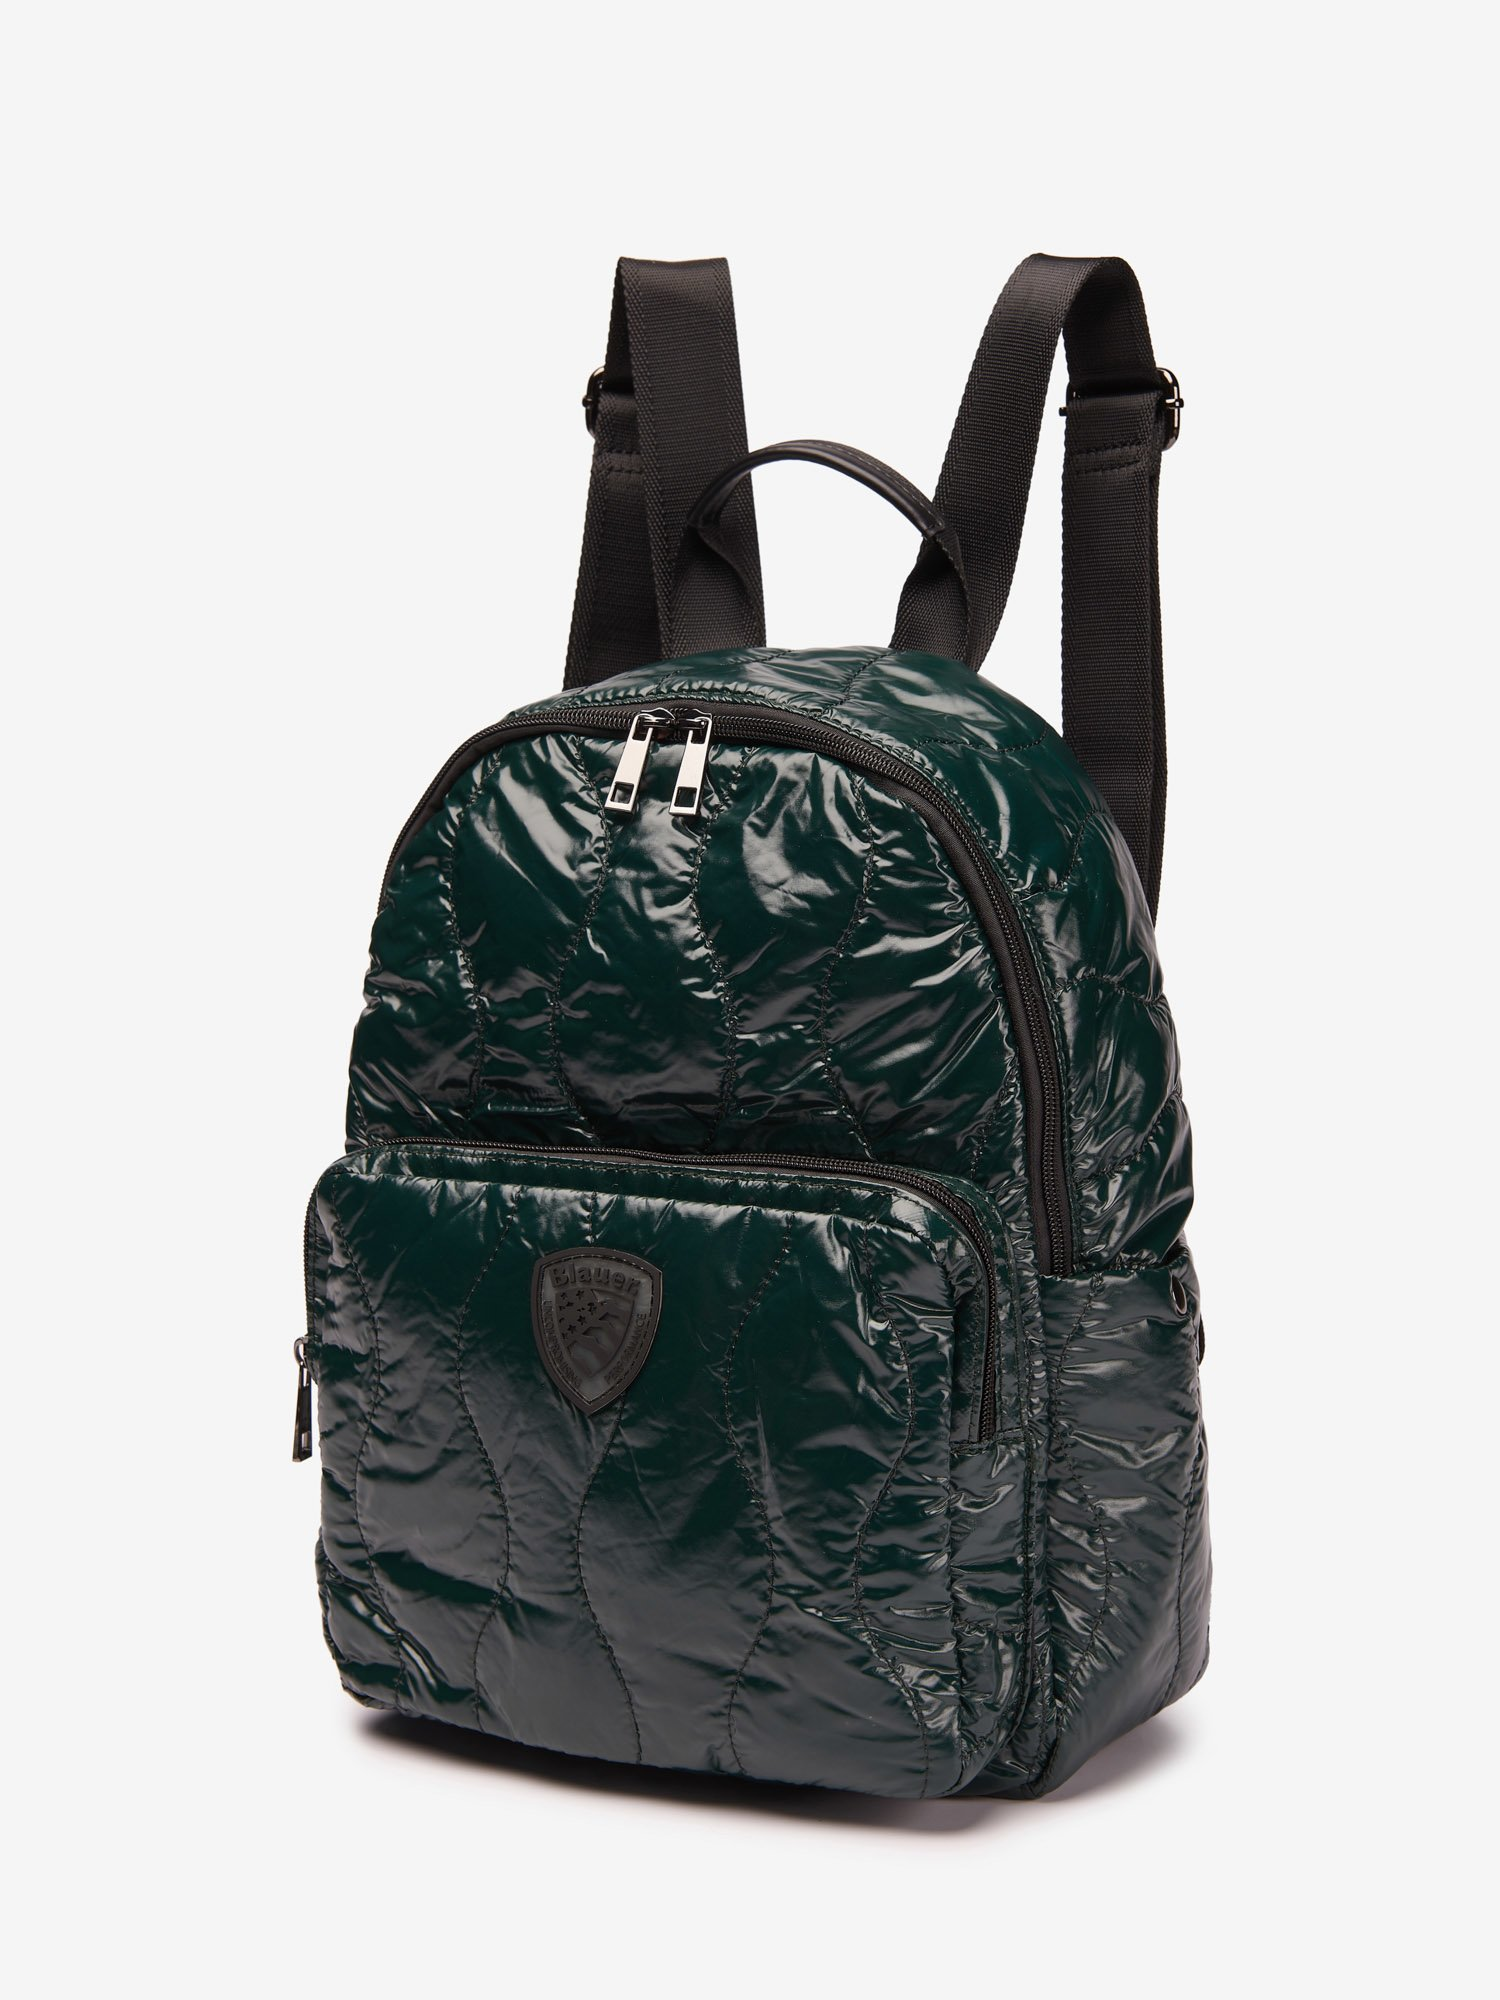 BOMBER STYLE BACKPACK - Blauer